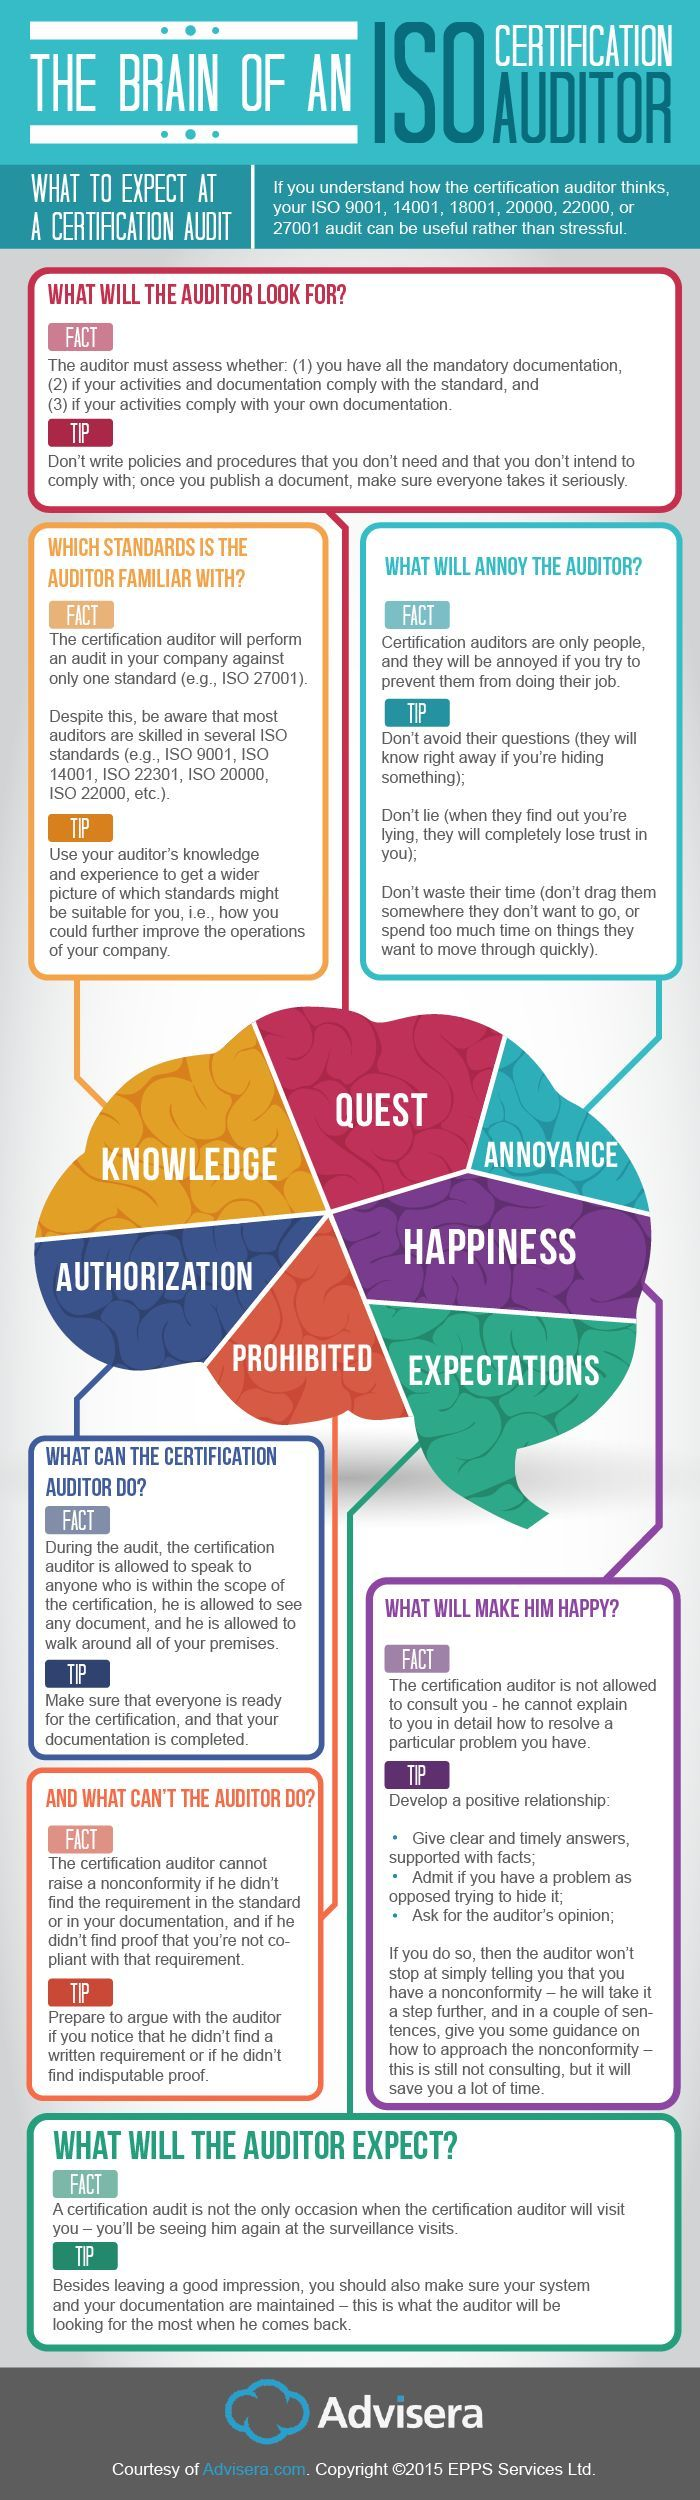 The Brain of an ISO Auditor – What to Expect at a Certification Audit #infographic #Business (scheduled via http://www.tailwindapp.com?utm_source=pinterest&utm_medium=twpin&utm_content=post90155147&utm_campaign=scheduler_attribution)